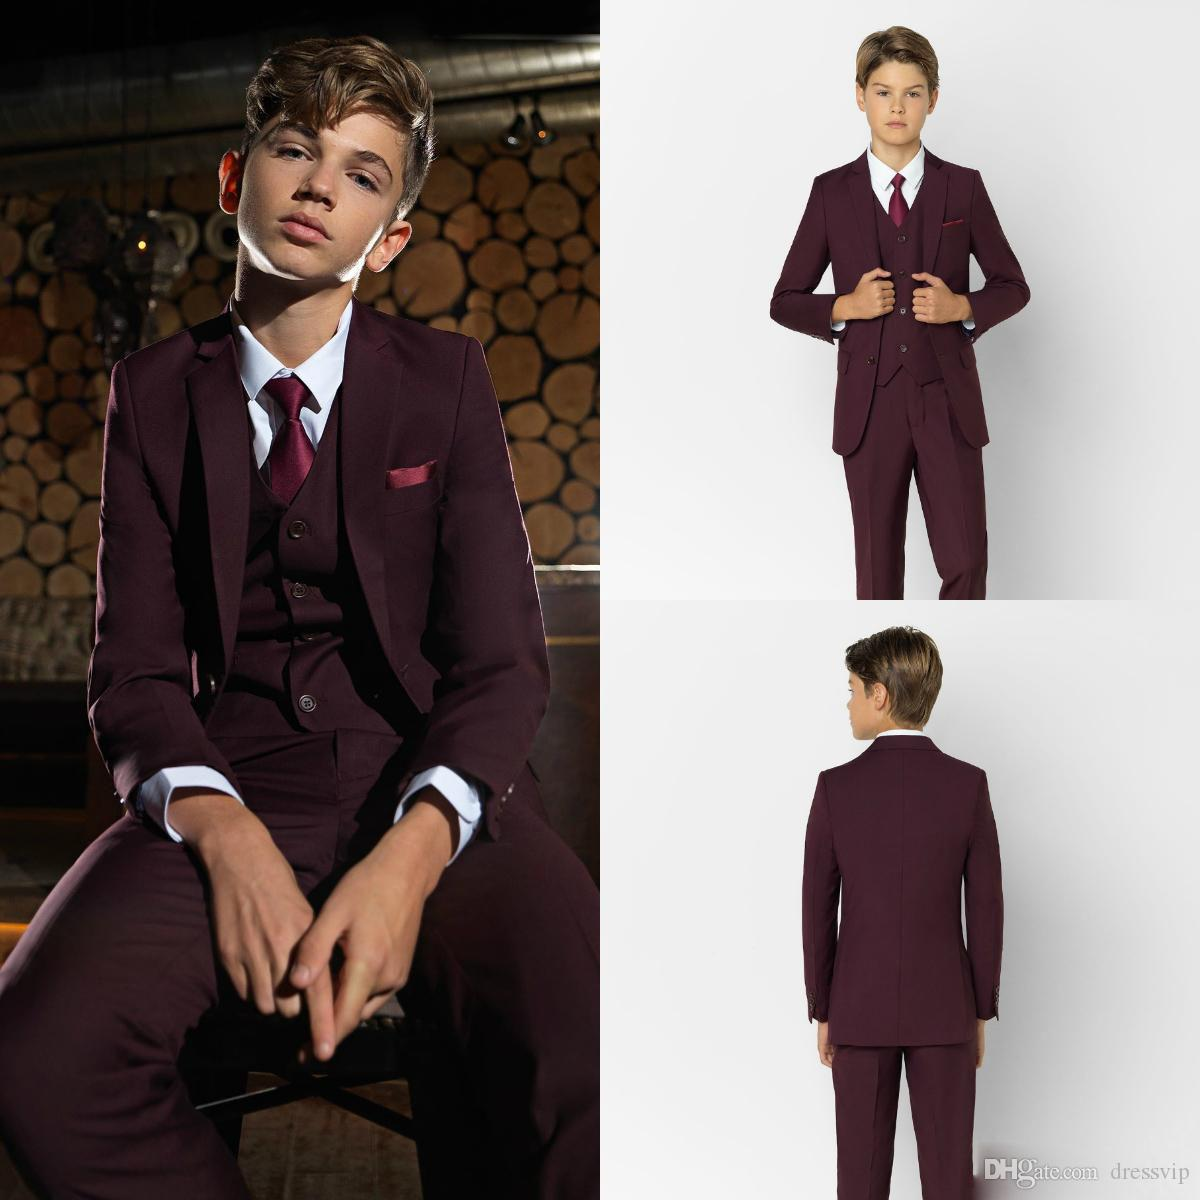 Dark Red Boys Tuxedo Boys Dinner Suits Boys Formal Suits Tuxedo for Kids Tuxedo Formal Occasion Suits For Little Men Three Pieces